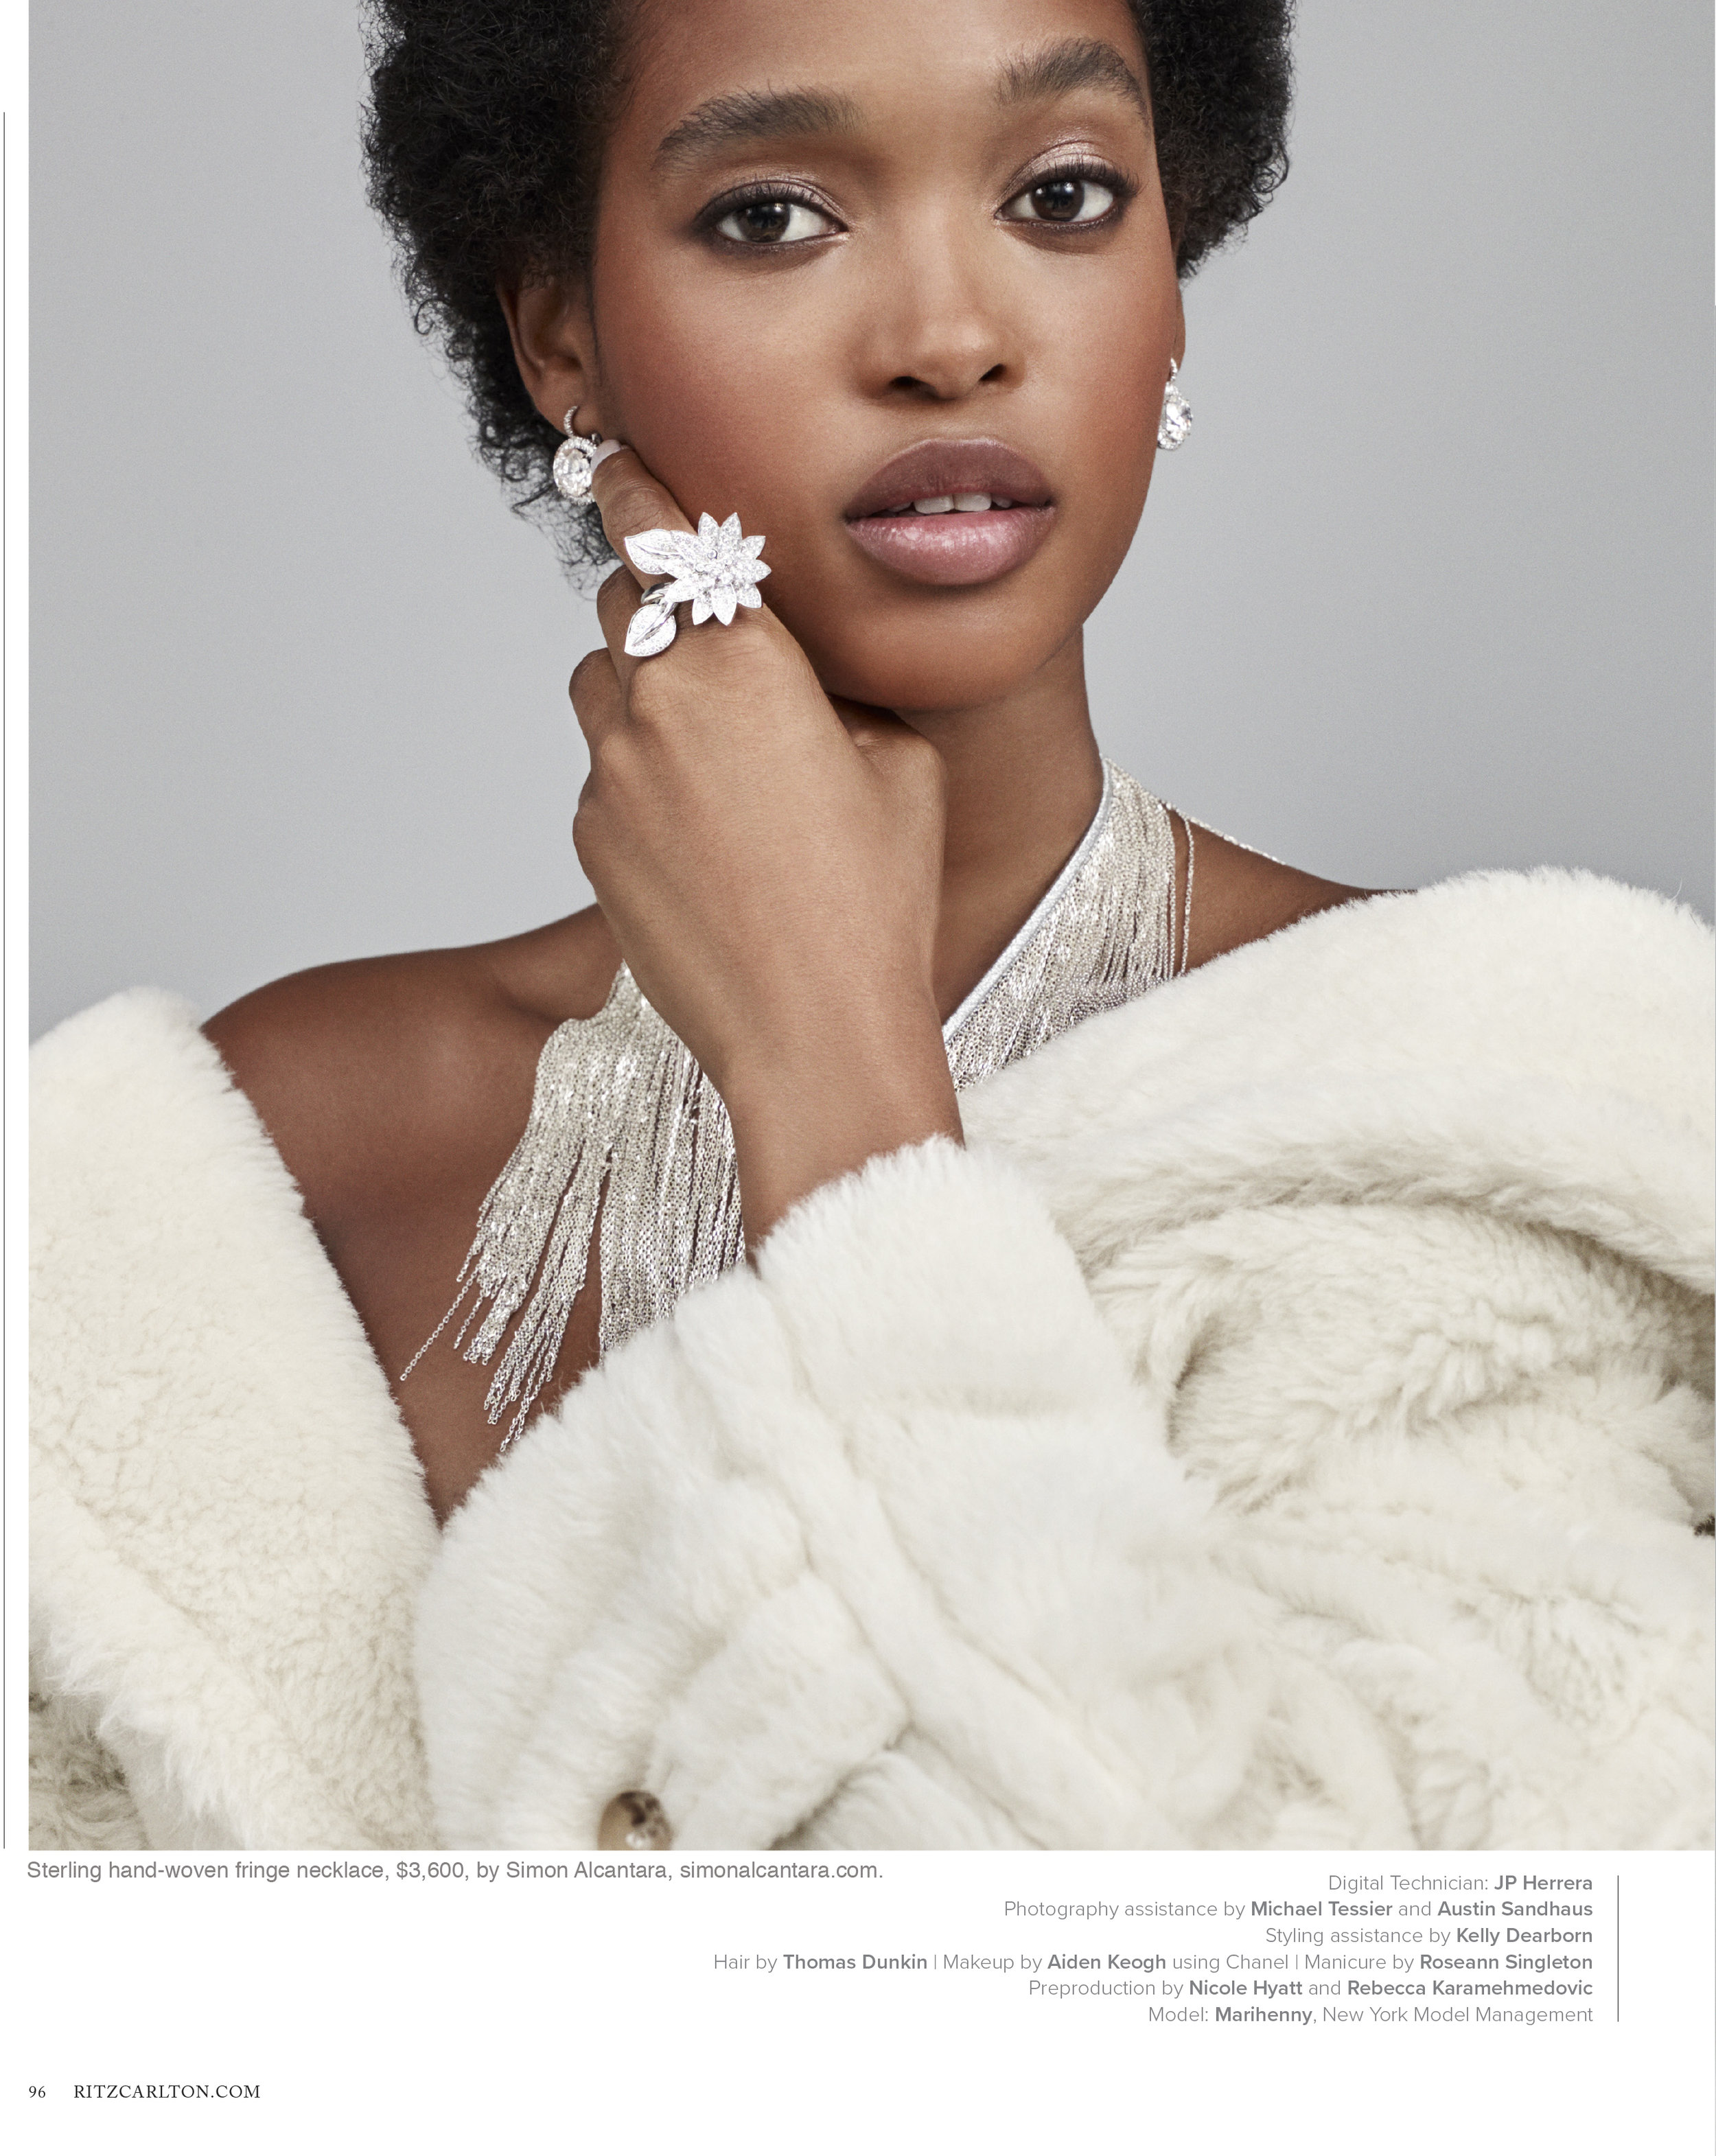 RITZ CARLTON MAGAZINE HOLIDAY ISSUE. PHOTO BY SIMON BURSTALL, STYLED BY MIMI LOMBARDO.  NECKLACE  BY SIMON ALCANTATARA